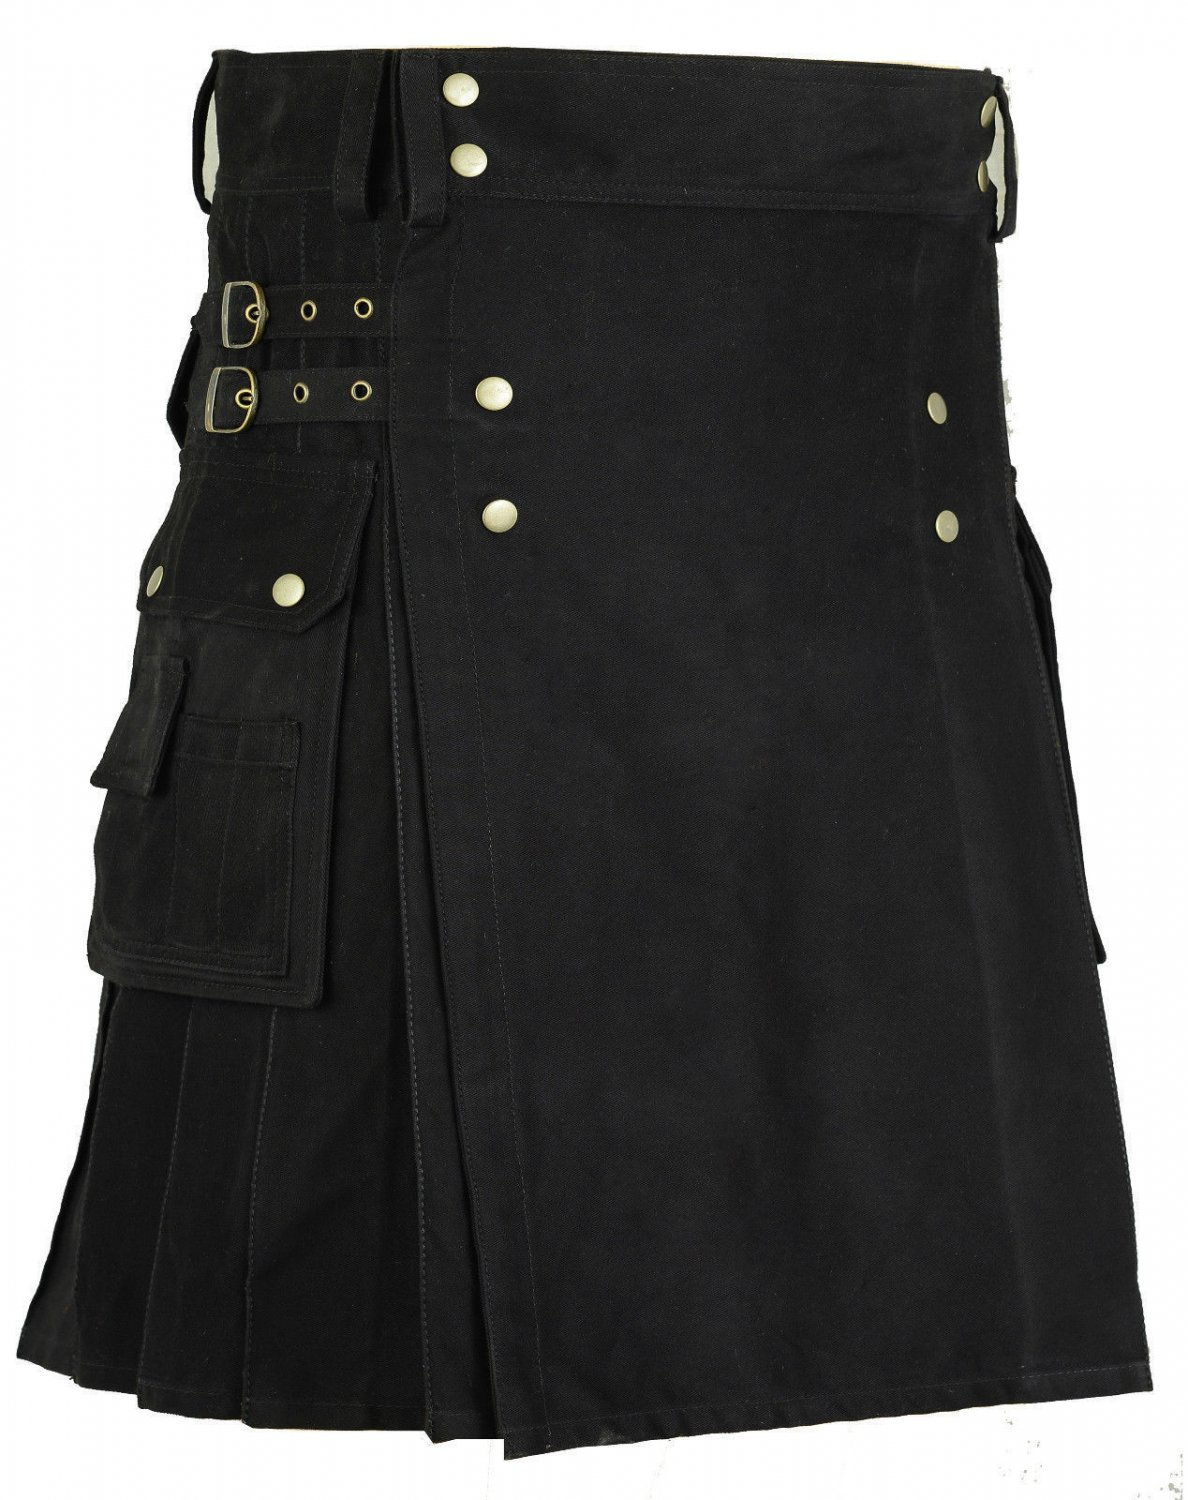 Size 40 New Scottish Cotton Kilt Deluxe Goth Outdoor Utility Kilts Highland Skirt